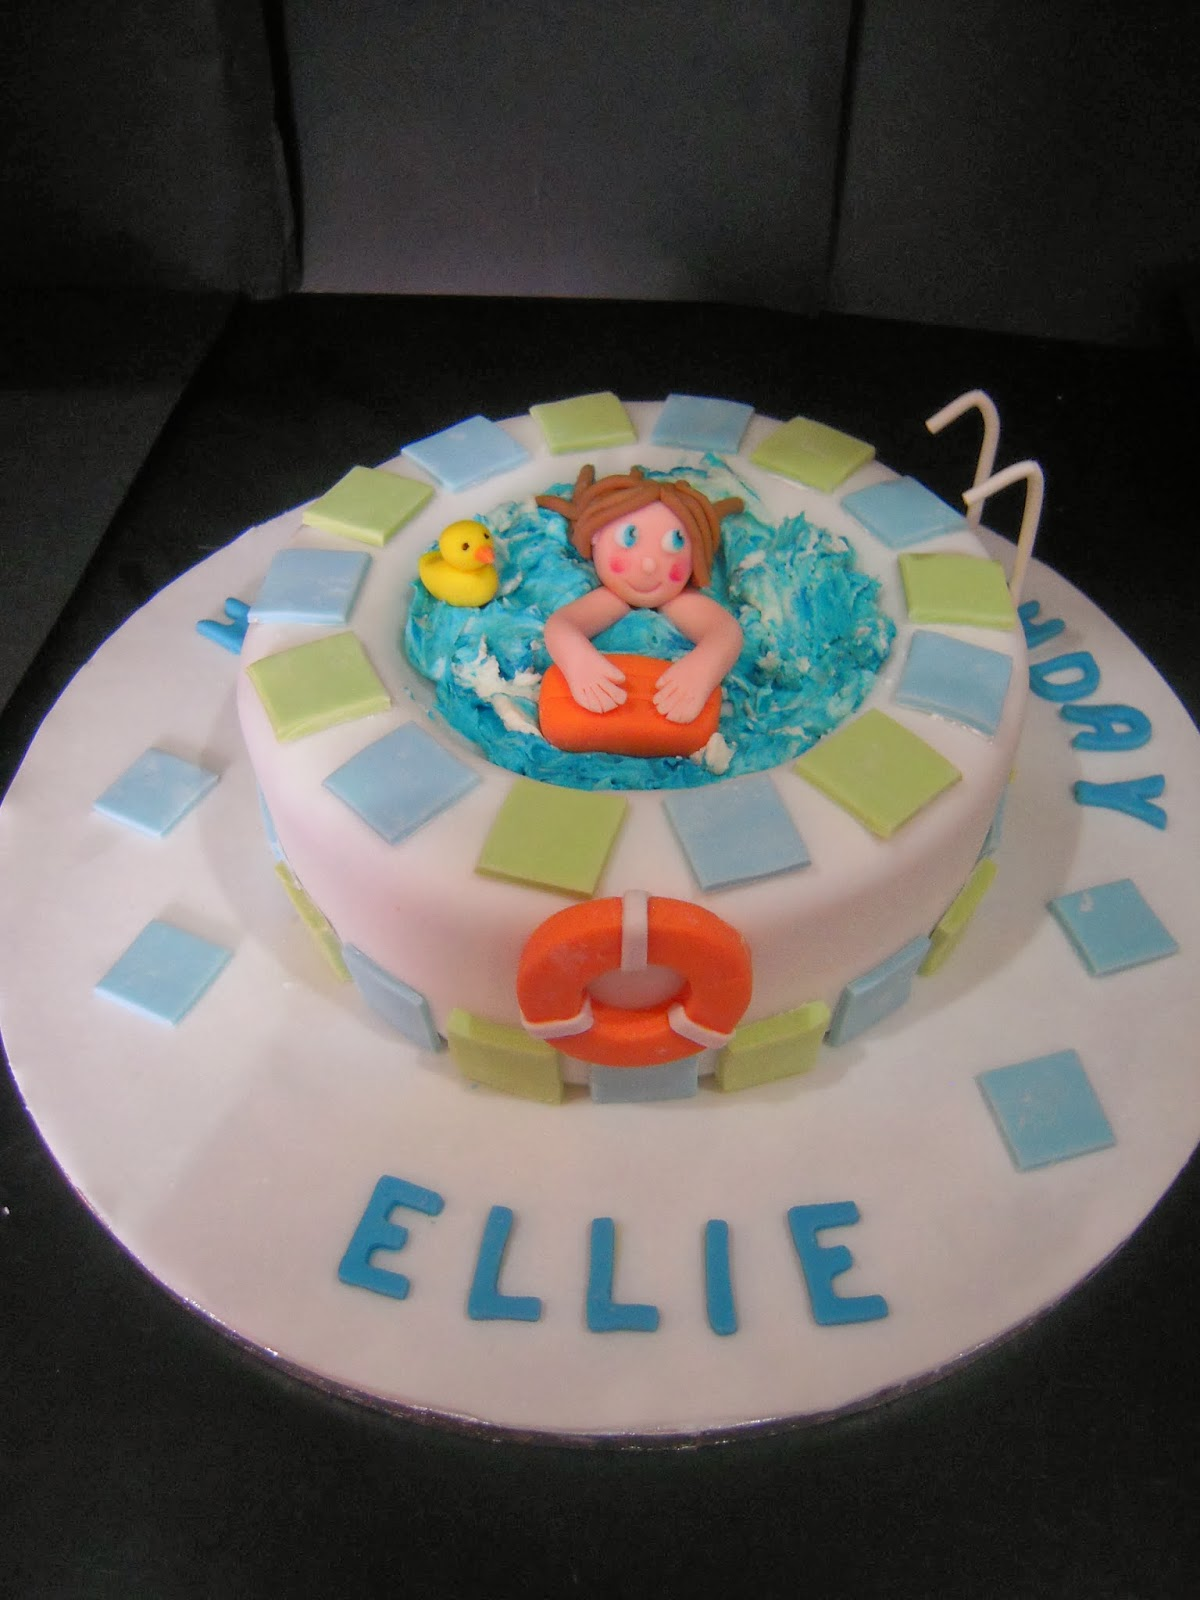 Eileen atkinson 39 s celebration cakes swimming pool birthday cake for Swimming pool birthday cake pictures